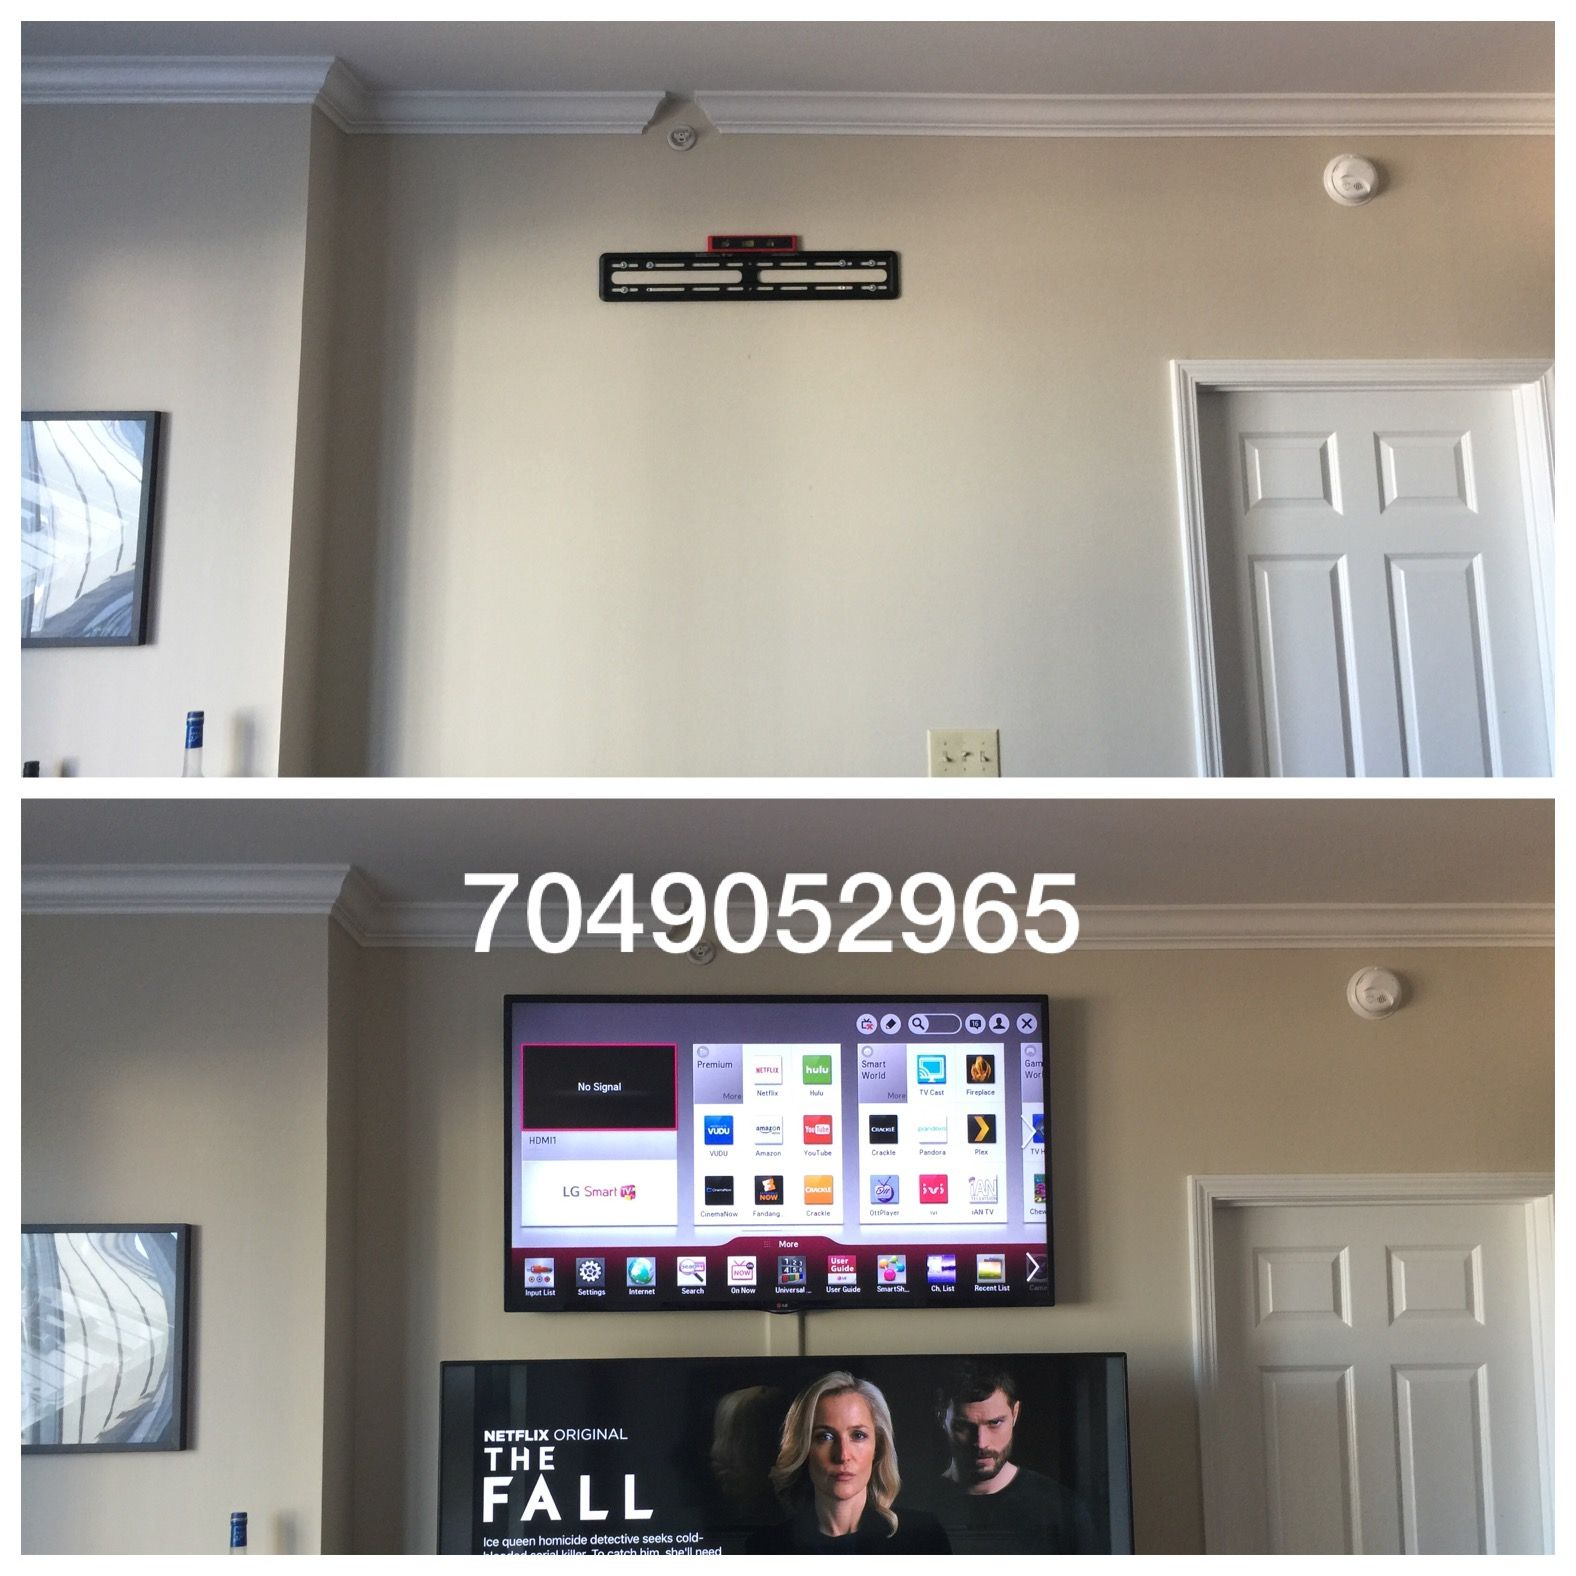 Full service home theater and home wiring services. We are expanding ...